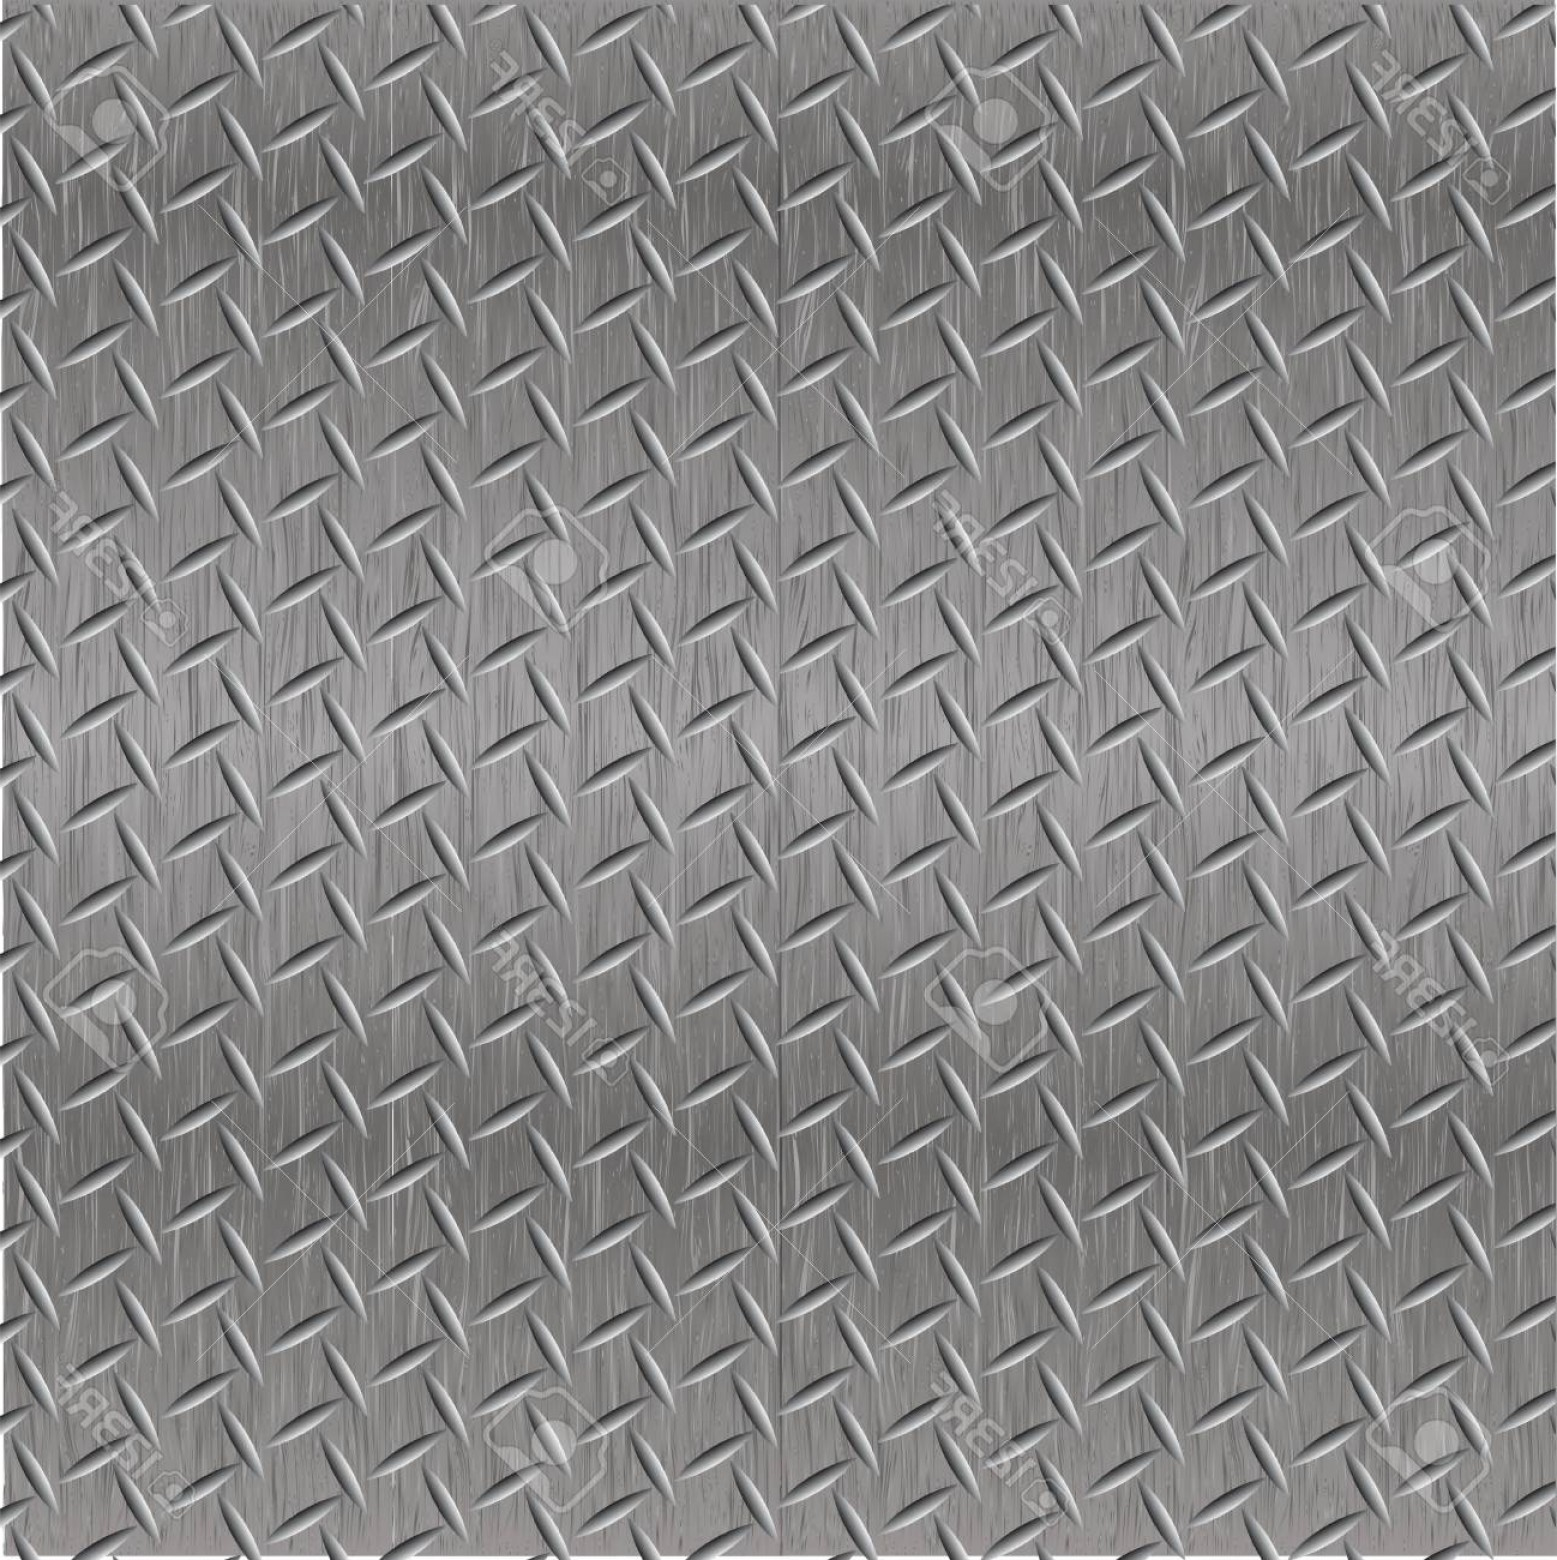 Diamond Plate Vector Pattern: Photostock Vector Steel Diamond Plate Seamless Pattern Vector Illustration